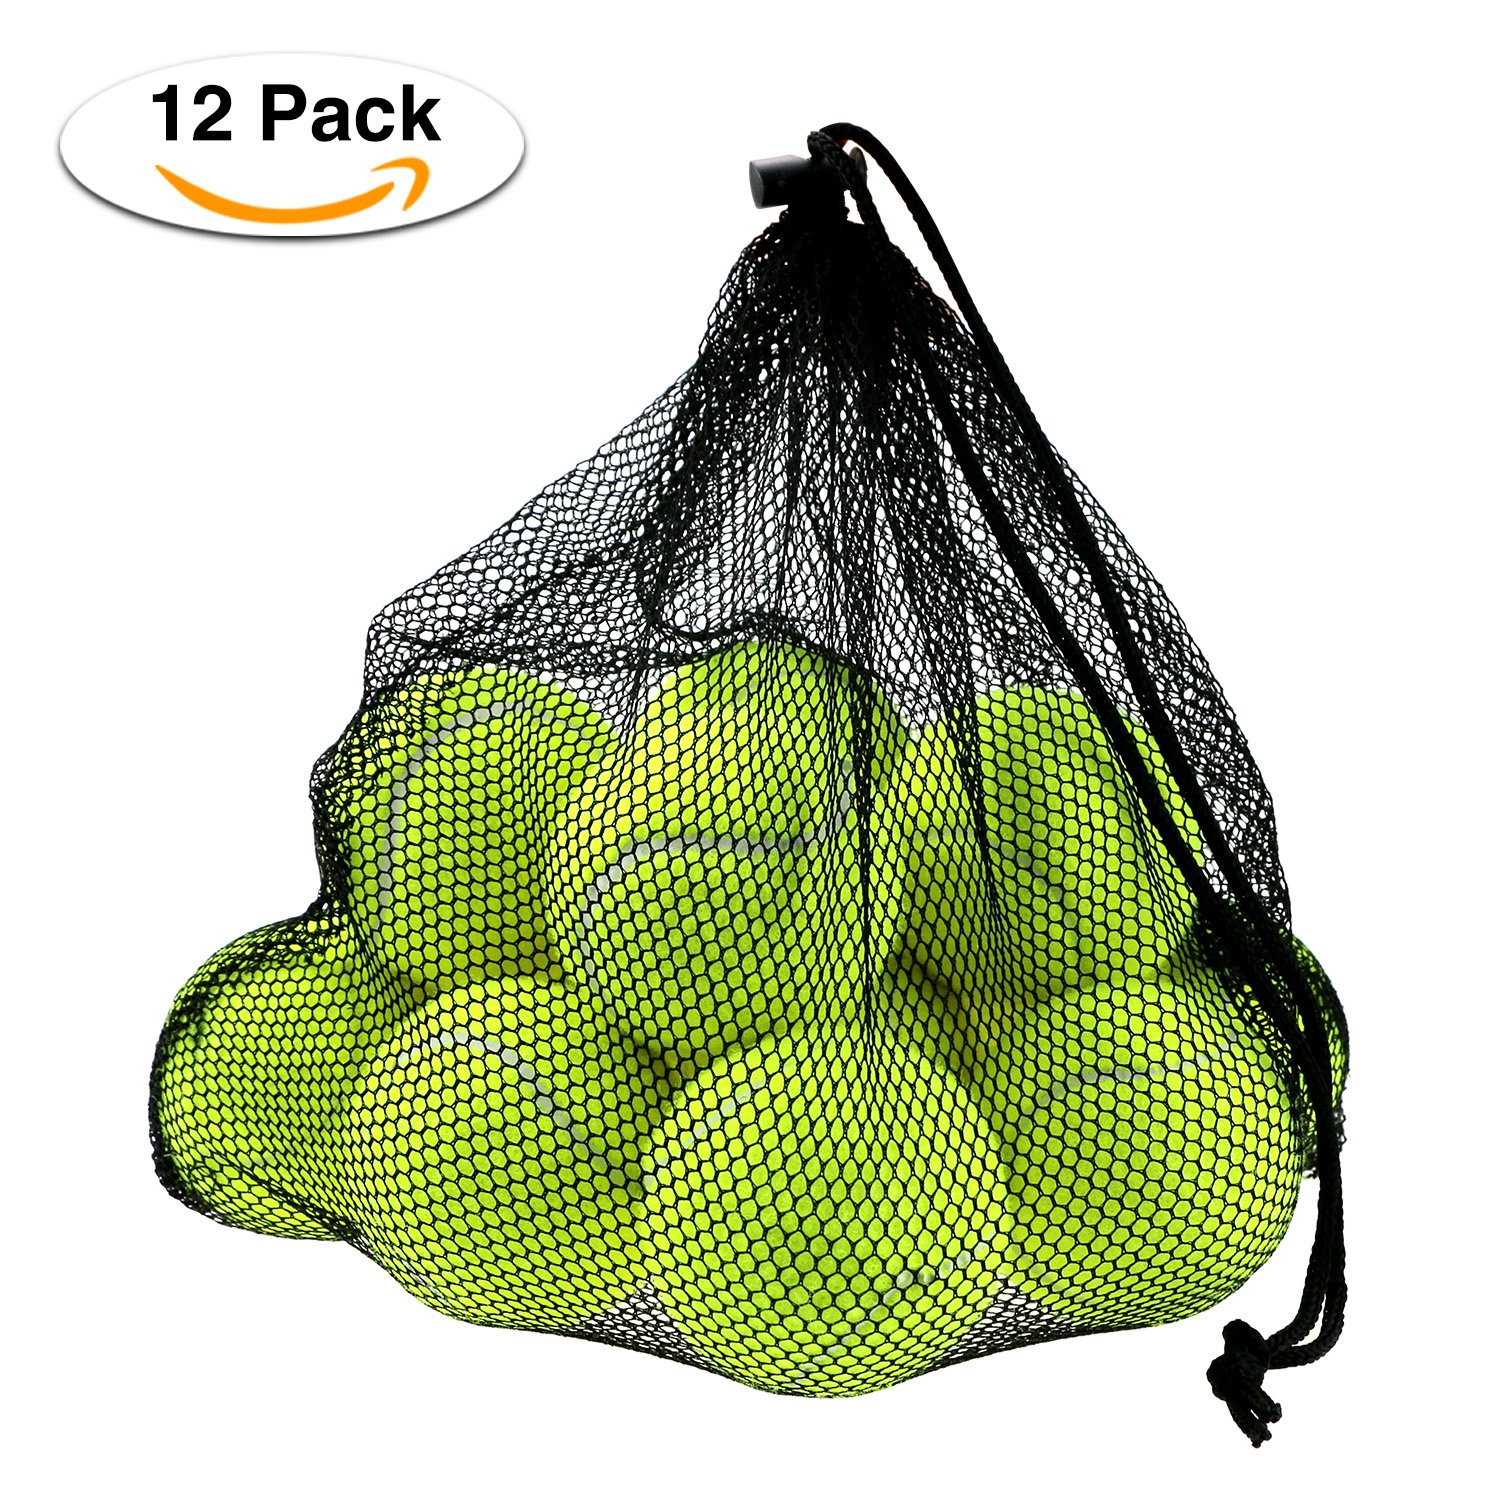 Philonext 12 Pcs Tennis Balls with Mesh Carrying Bag, Pressureless Tennis Balls Practice Balls Playing with Pets Sports Bucket Balls for Easy Transport Philonext Direct